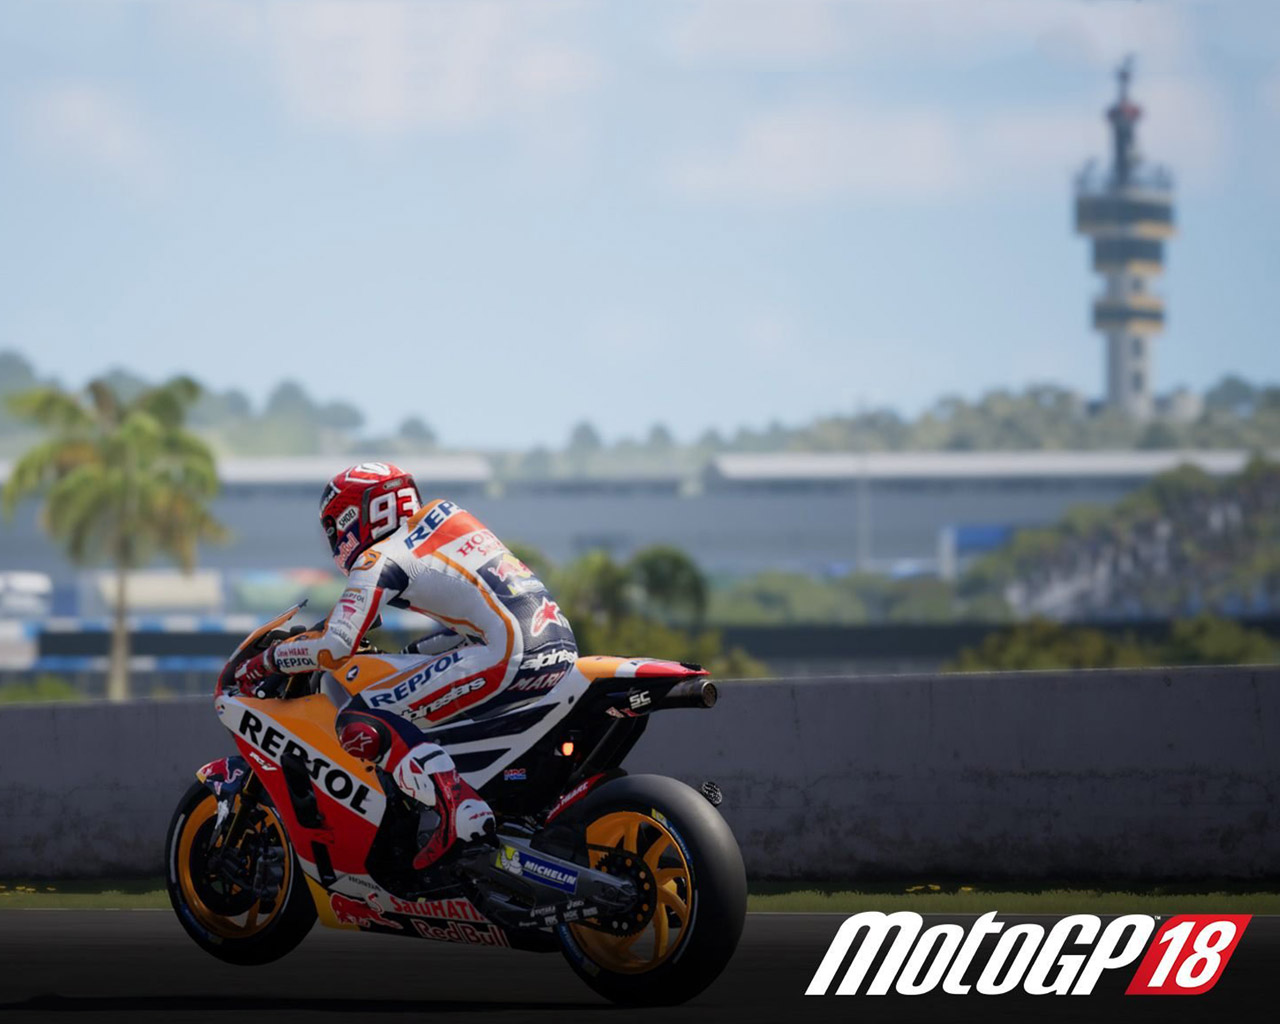 Free MotoGP 18 Wallpaper in 1280x1024